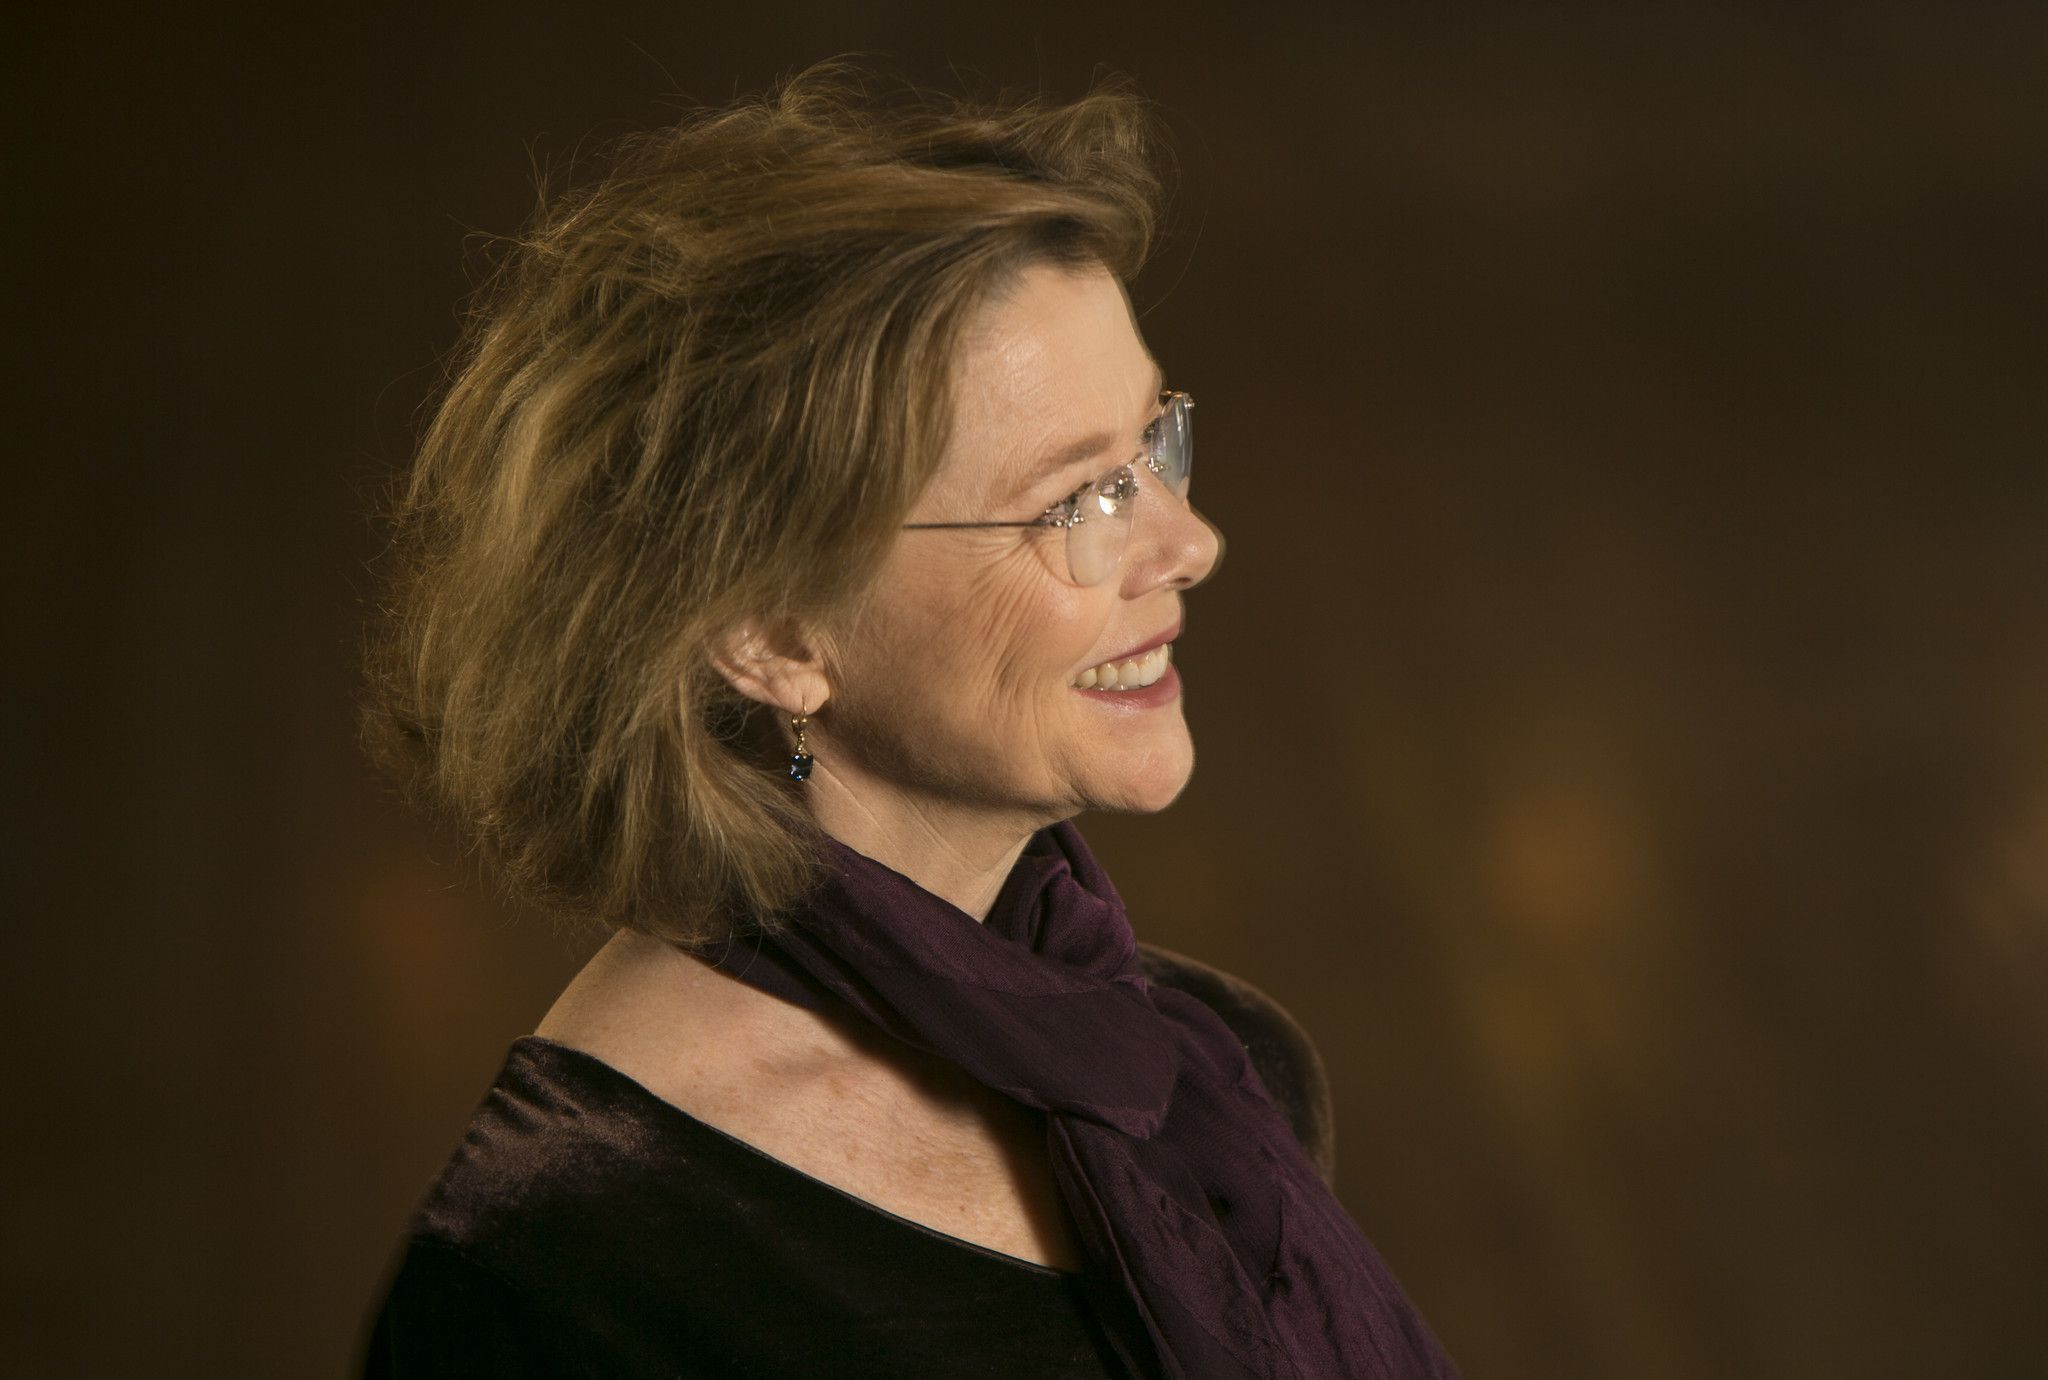 annette bening wallpaper - photo #14